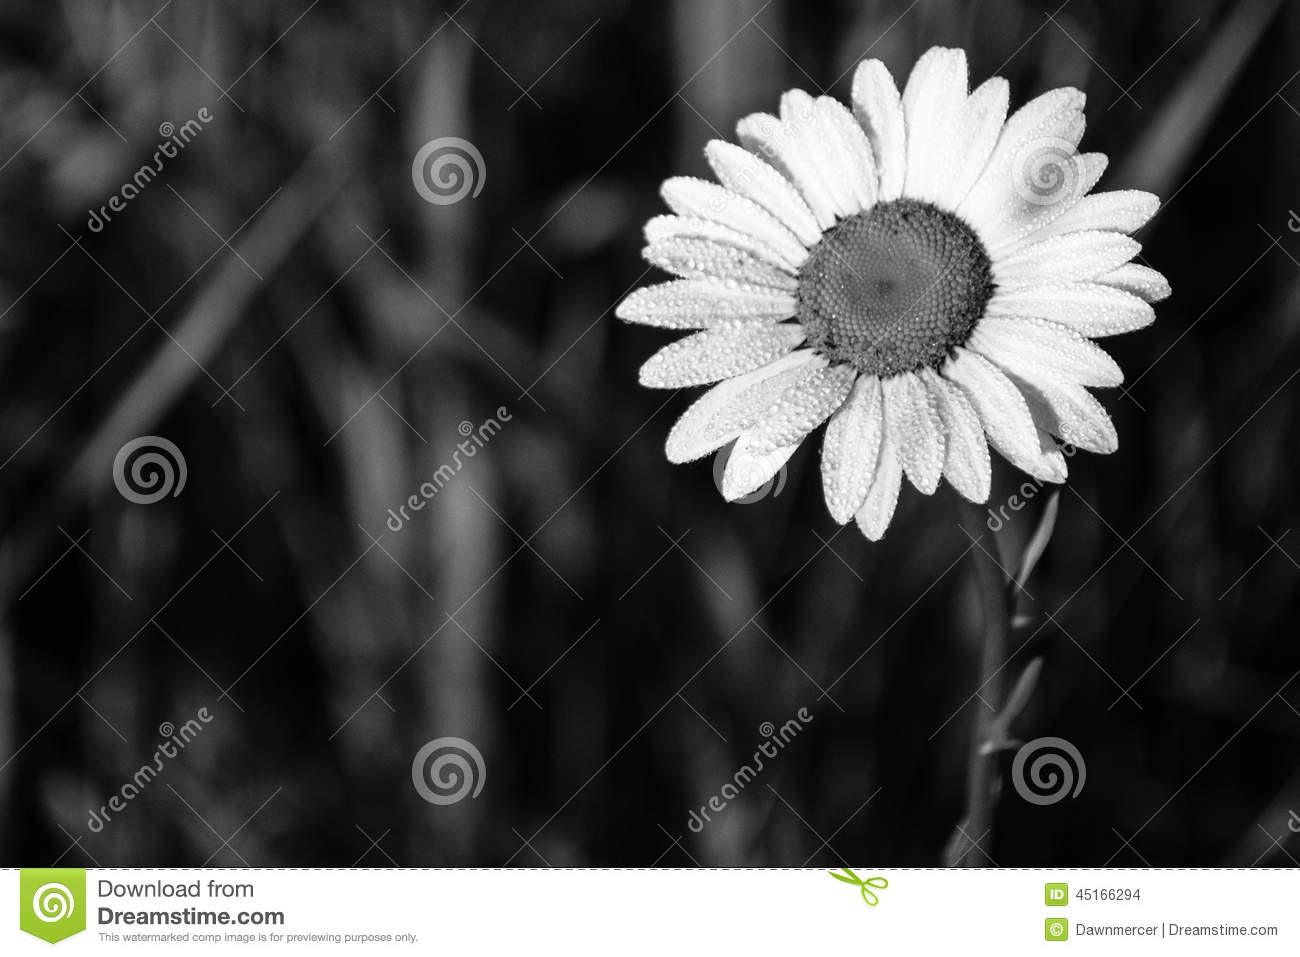 Water Droplets On Daisy Flower Black And White Stock Photo Image